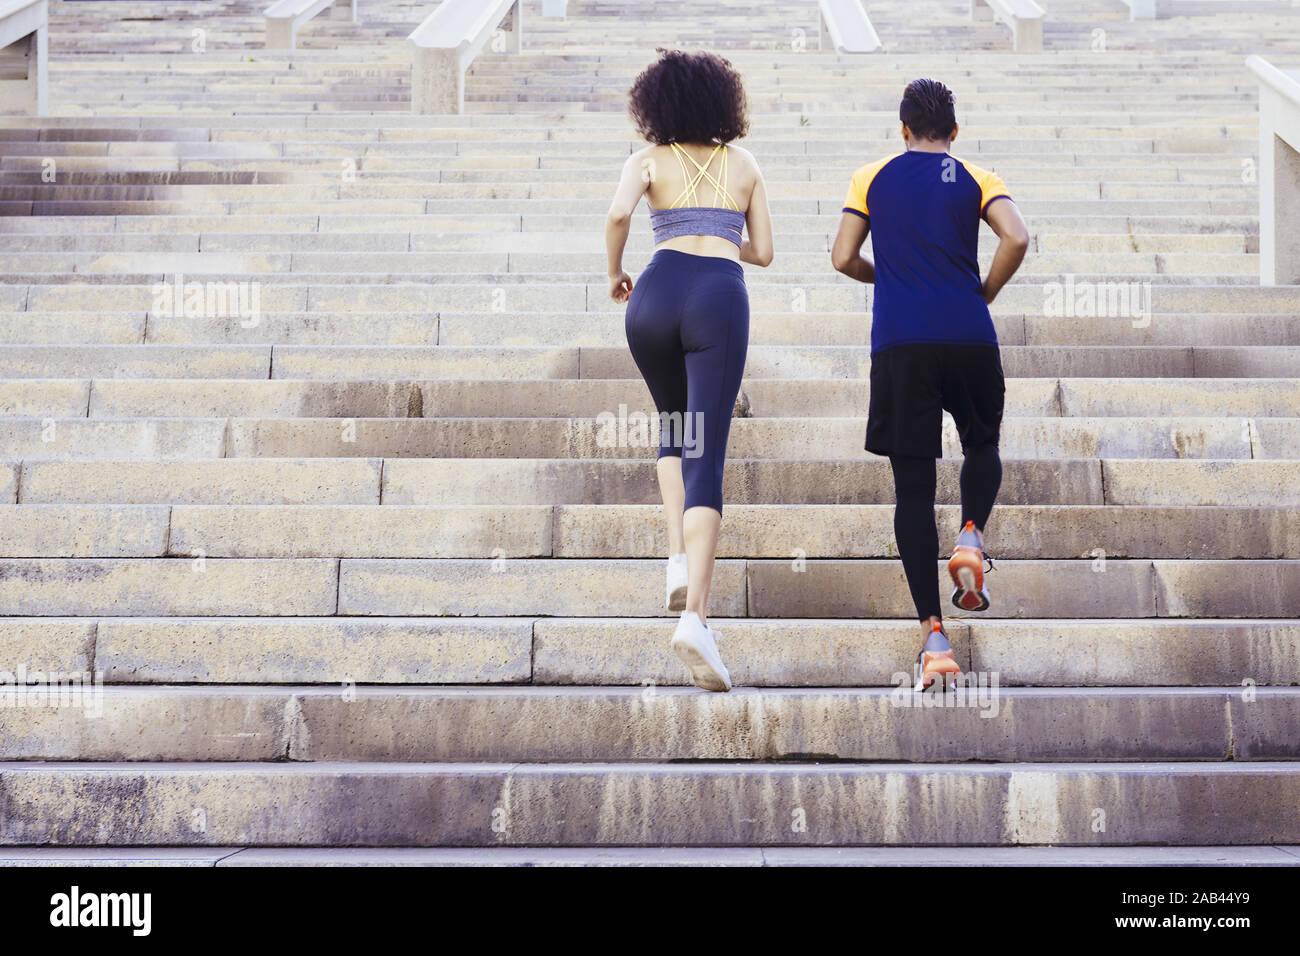 young runners couple running upstairs on city stairs, fitness, urban sports workout and healthy lifestyle concept, copy space for text Stock Photo